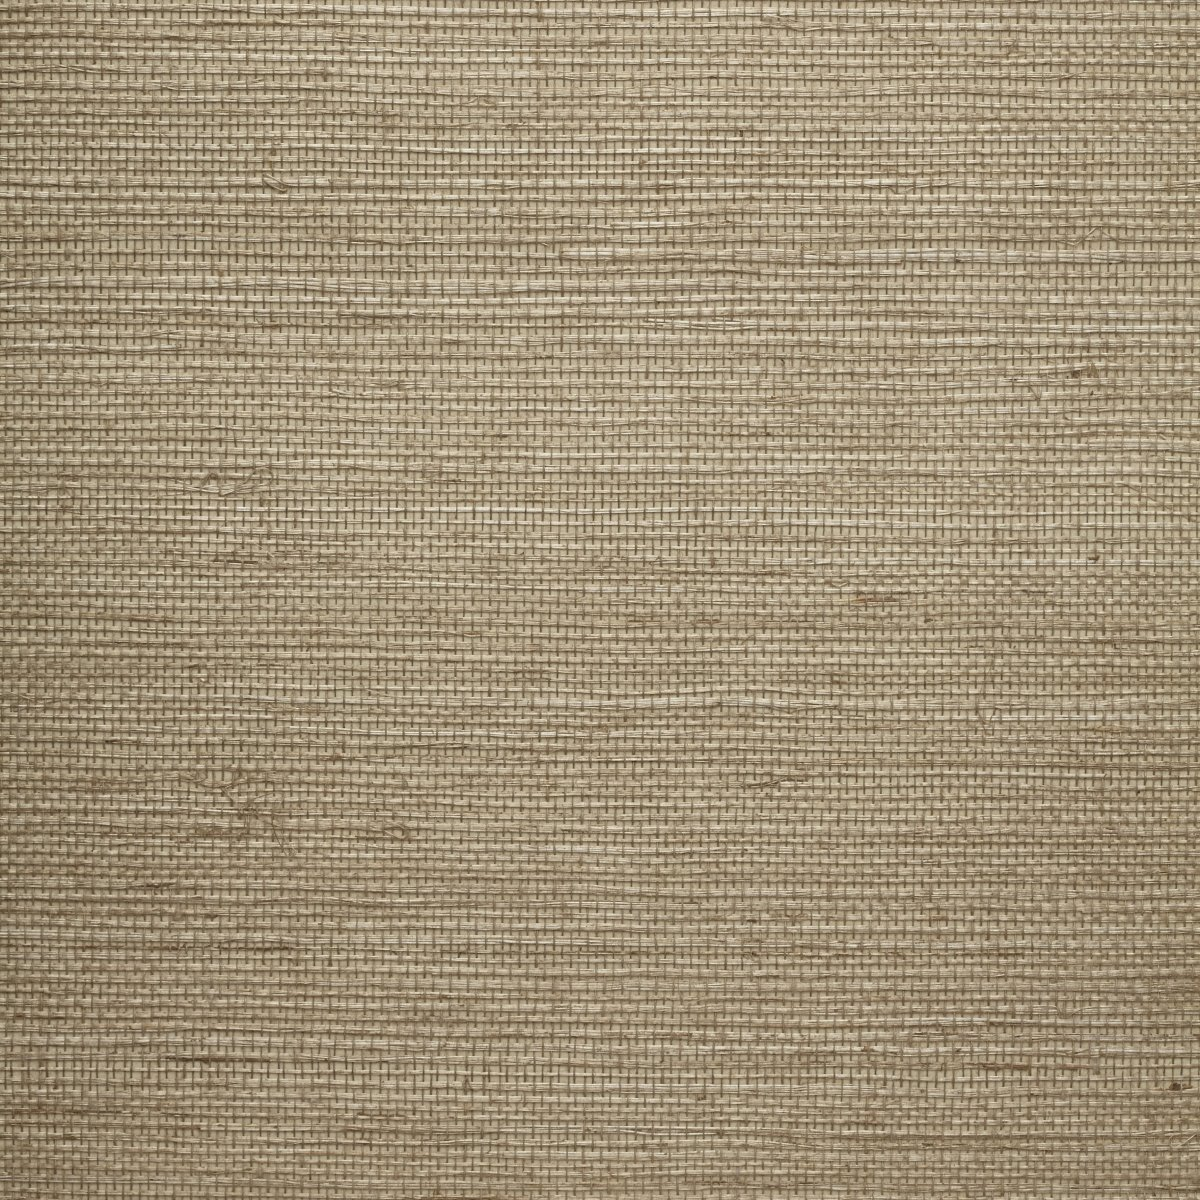 Sisal Wallpaper